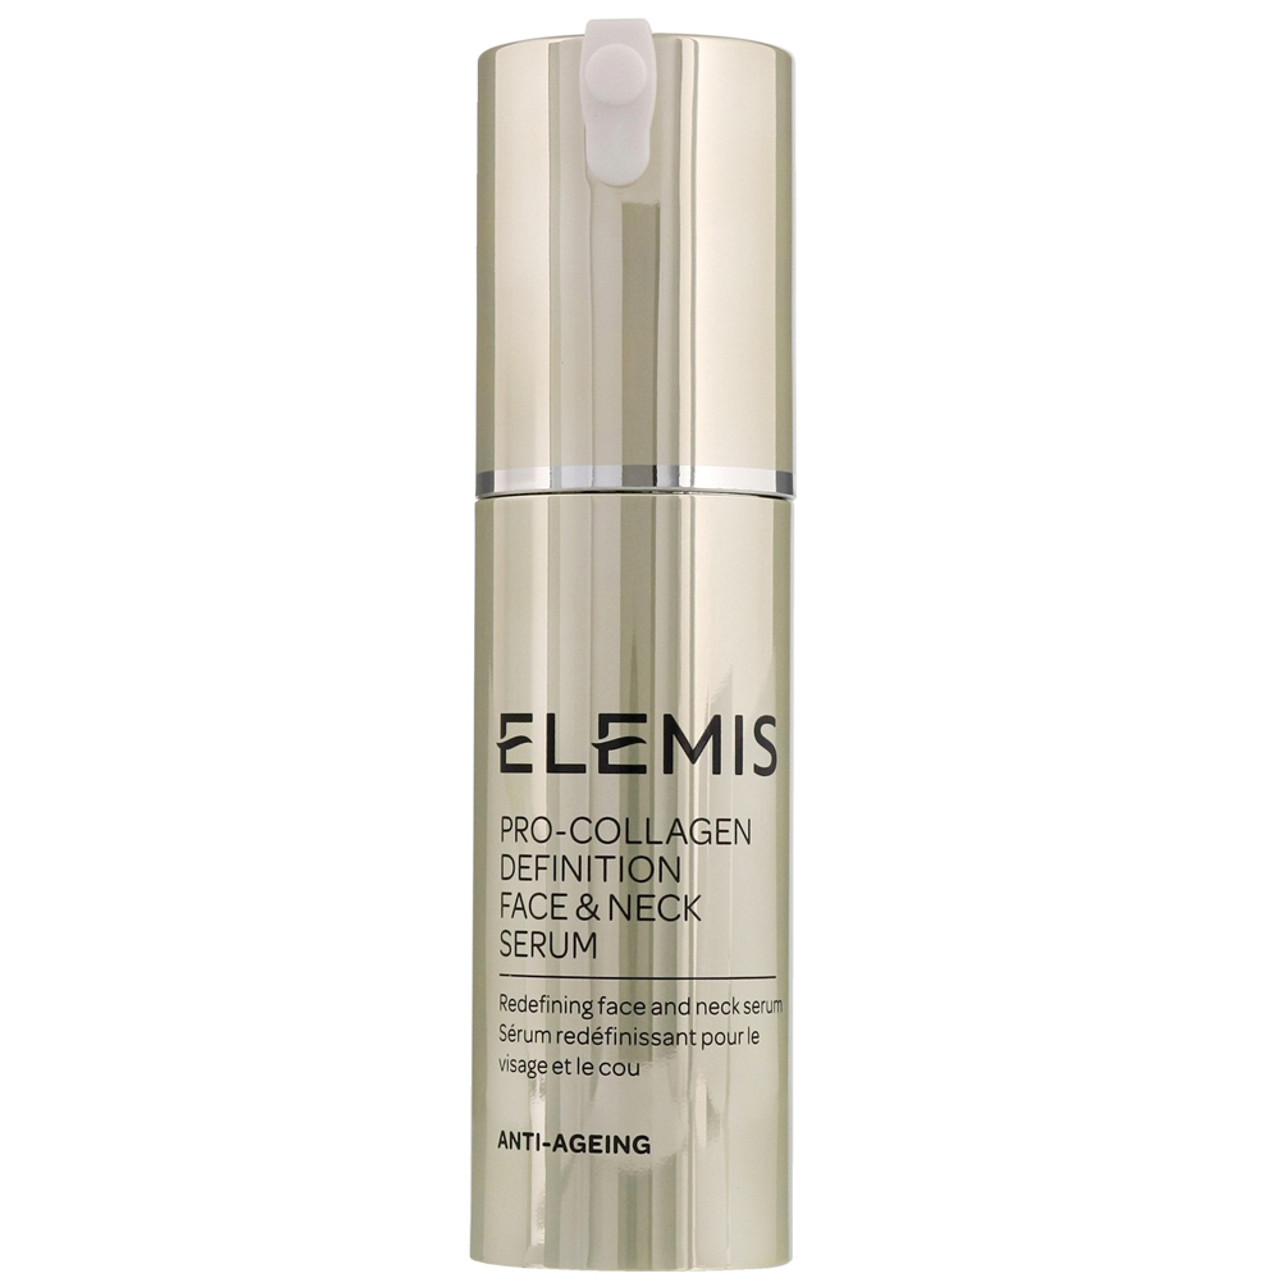 Elemis Pro-Collagen Definition Face & Neck Serum